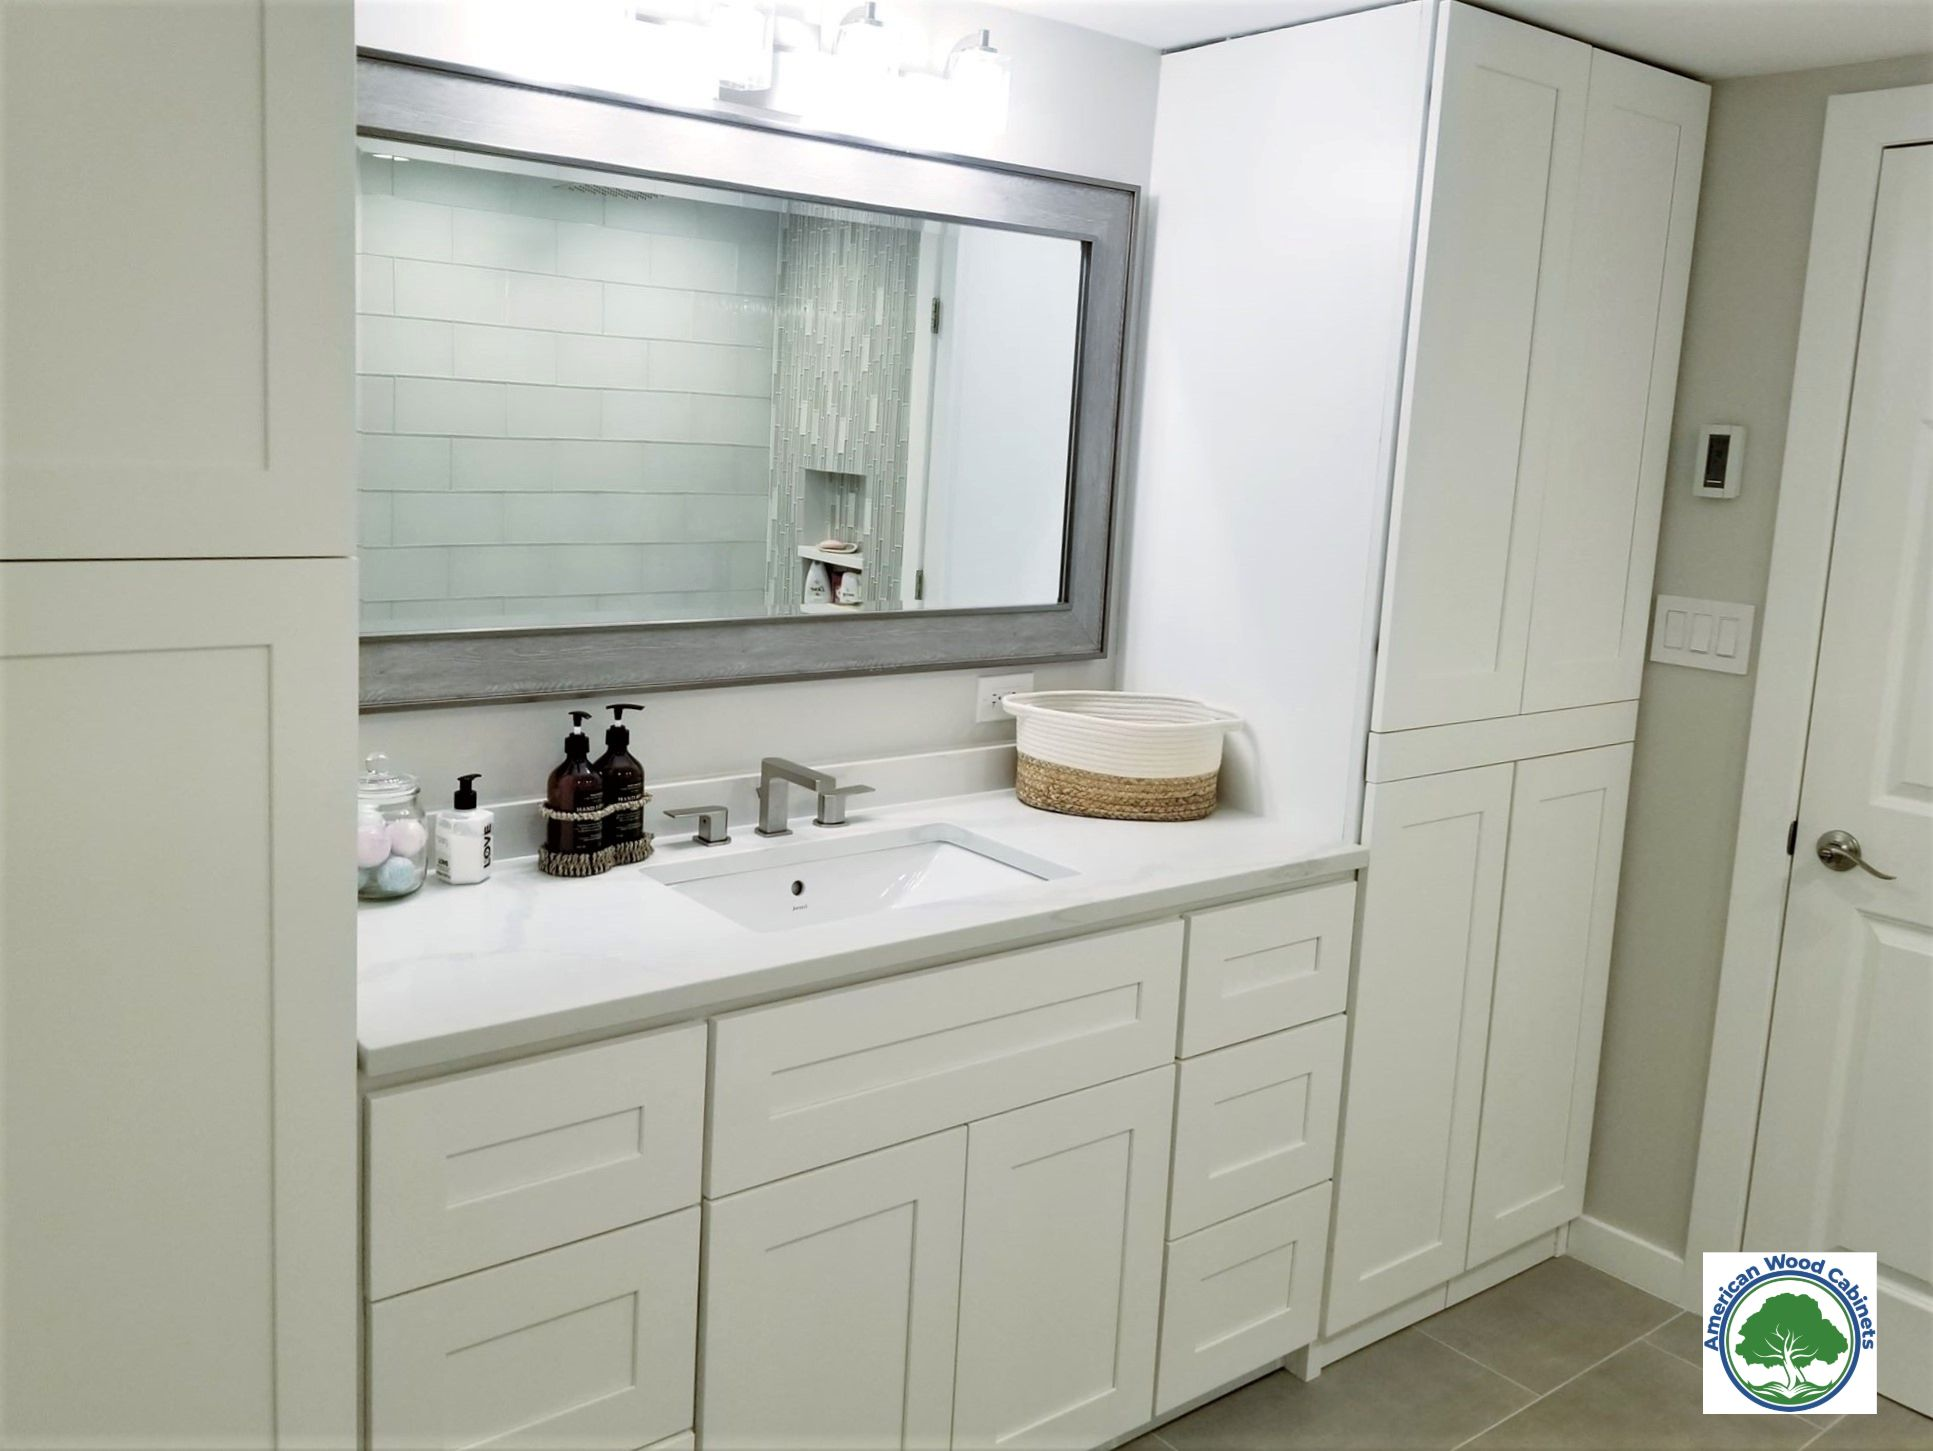 Bathroom Cabinets Quality Kitchen Cabinets Wood Cabinets High Quality Kitchen